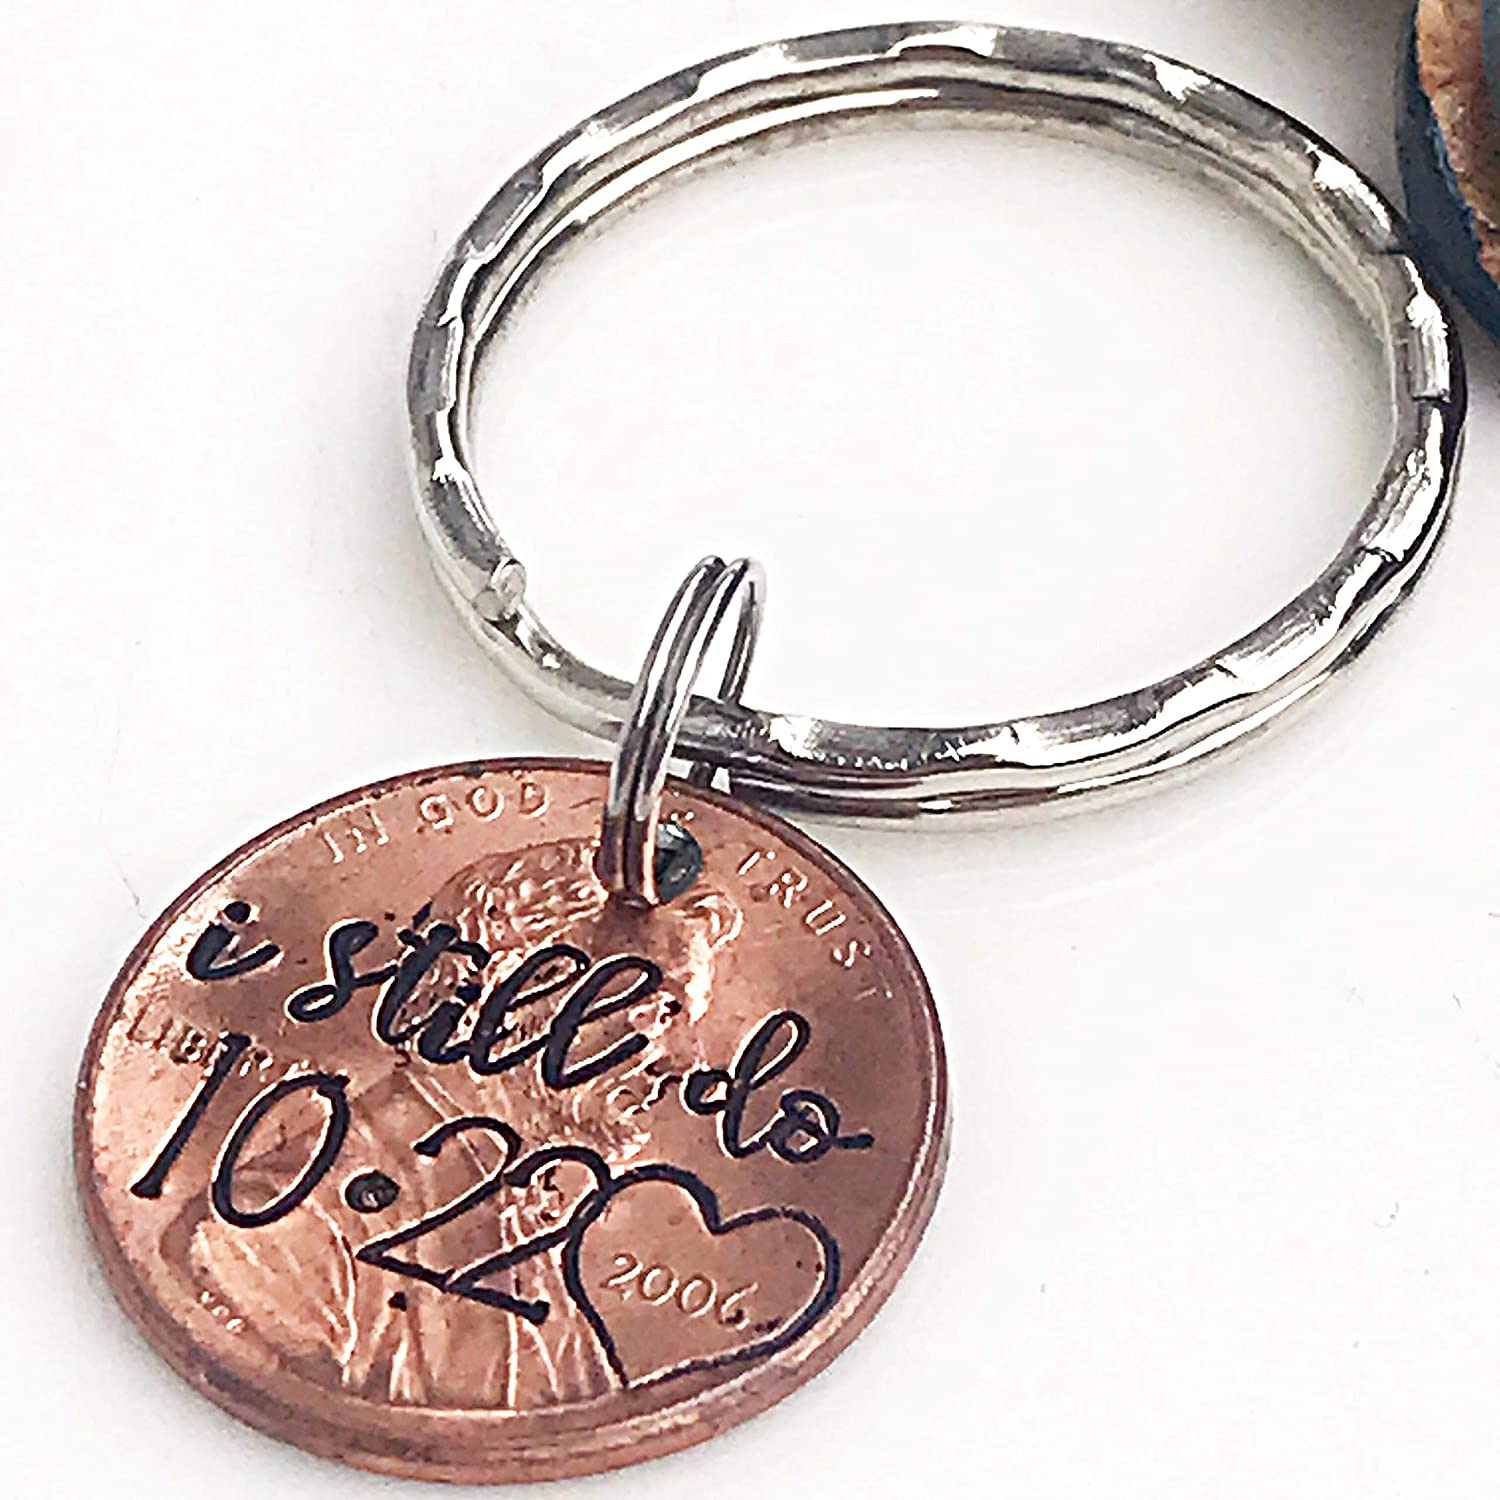 Amazon Com 7 Year Anniversary Gift For Him Copper Anniversary Present I Still Do Keychain Penny Keychain Husband Gifts Wife Gifts Custom Penny Handmade